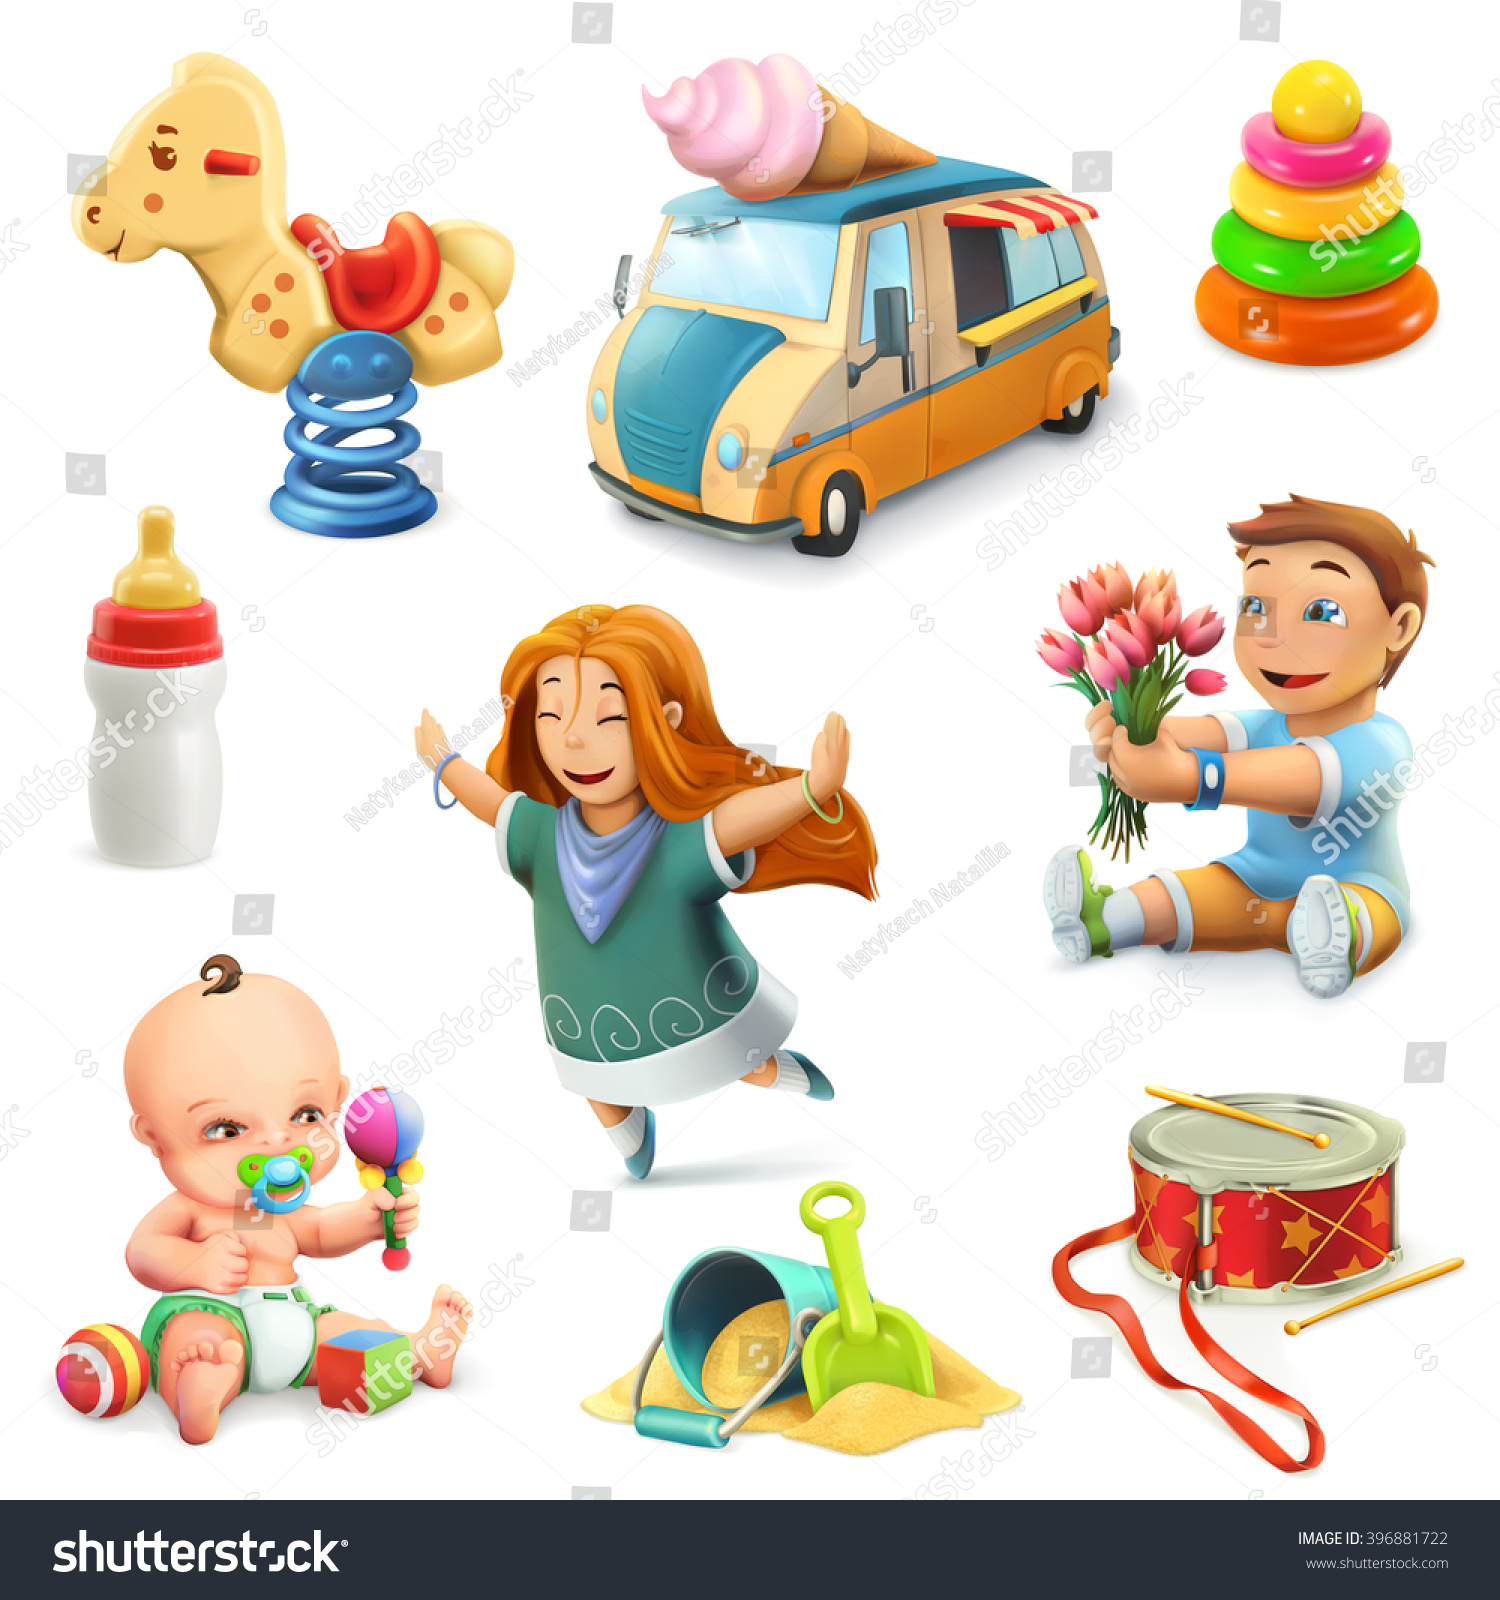 Kids Toys Set Vector Icons Stock Vector Shutterstock